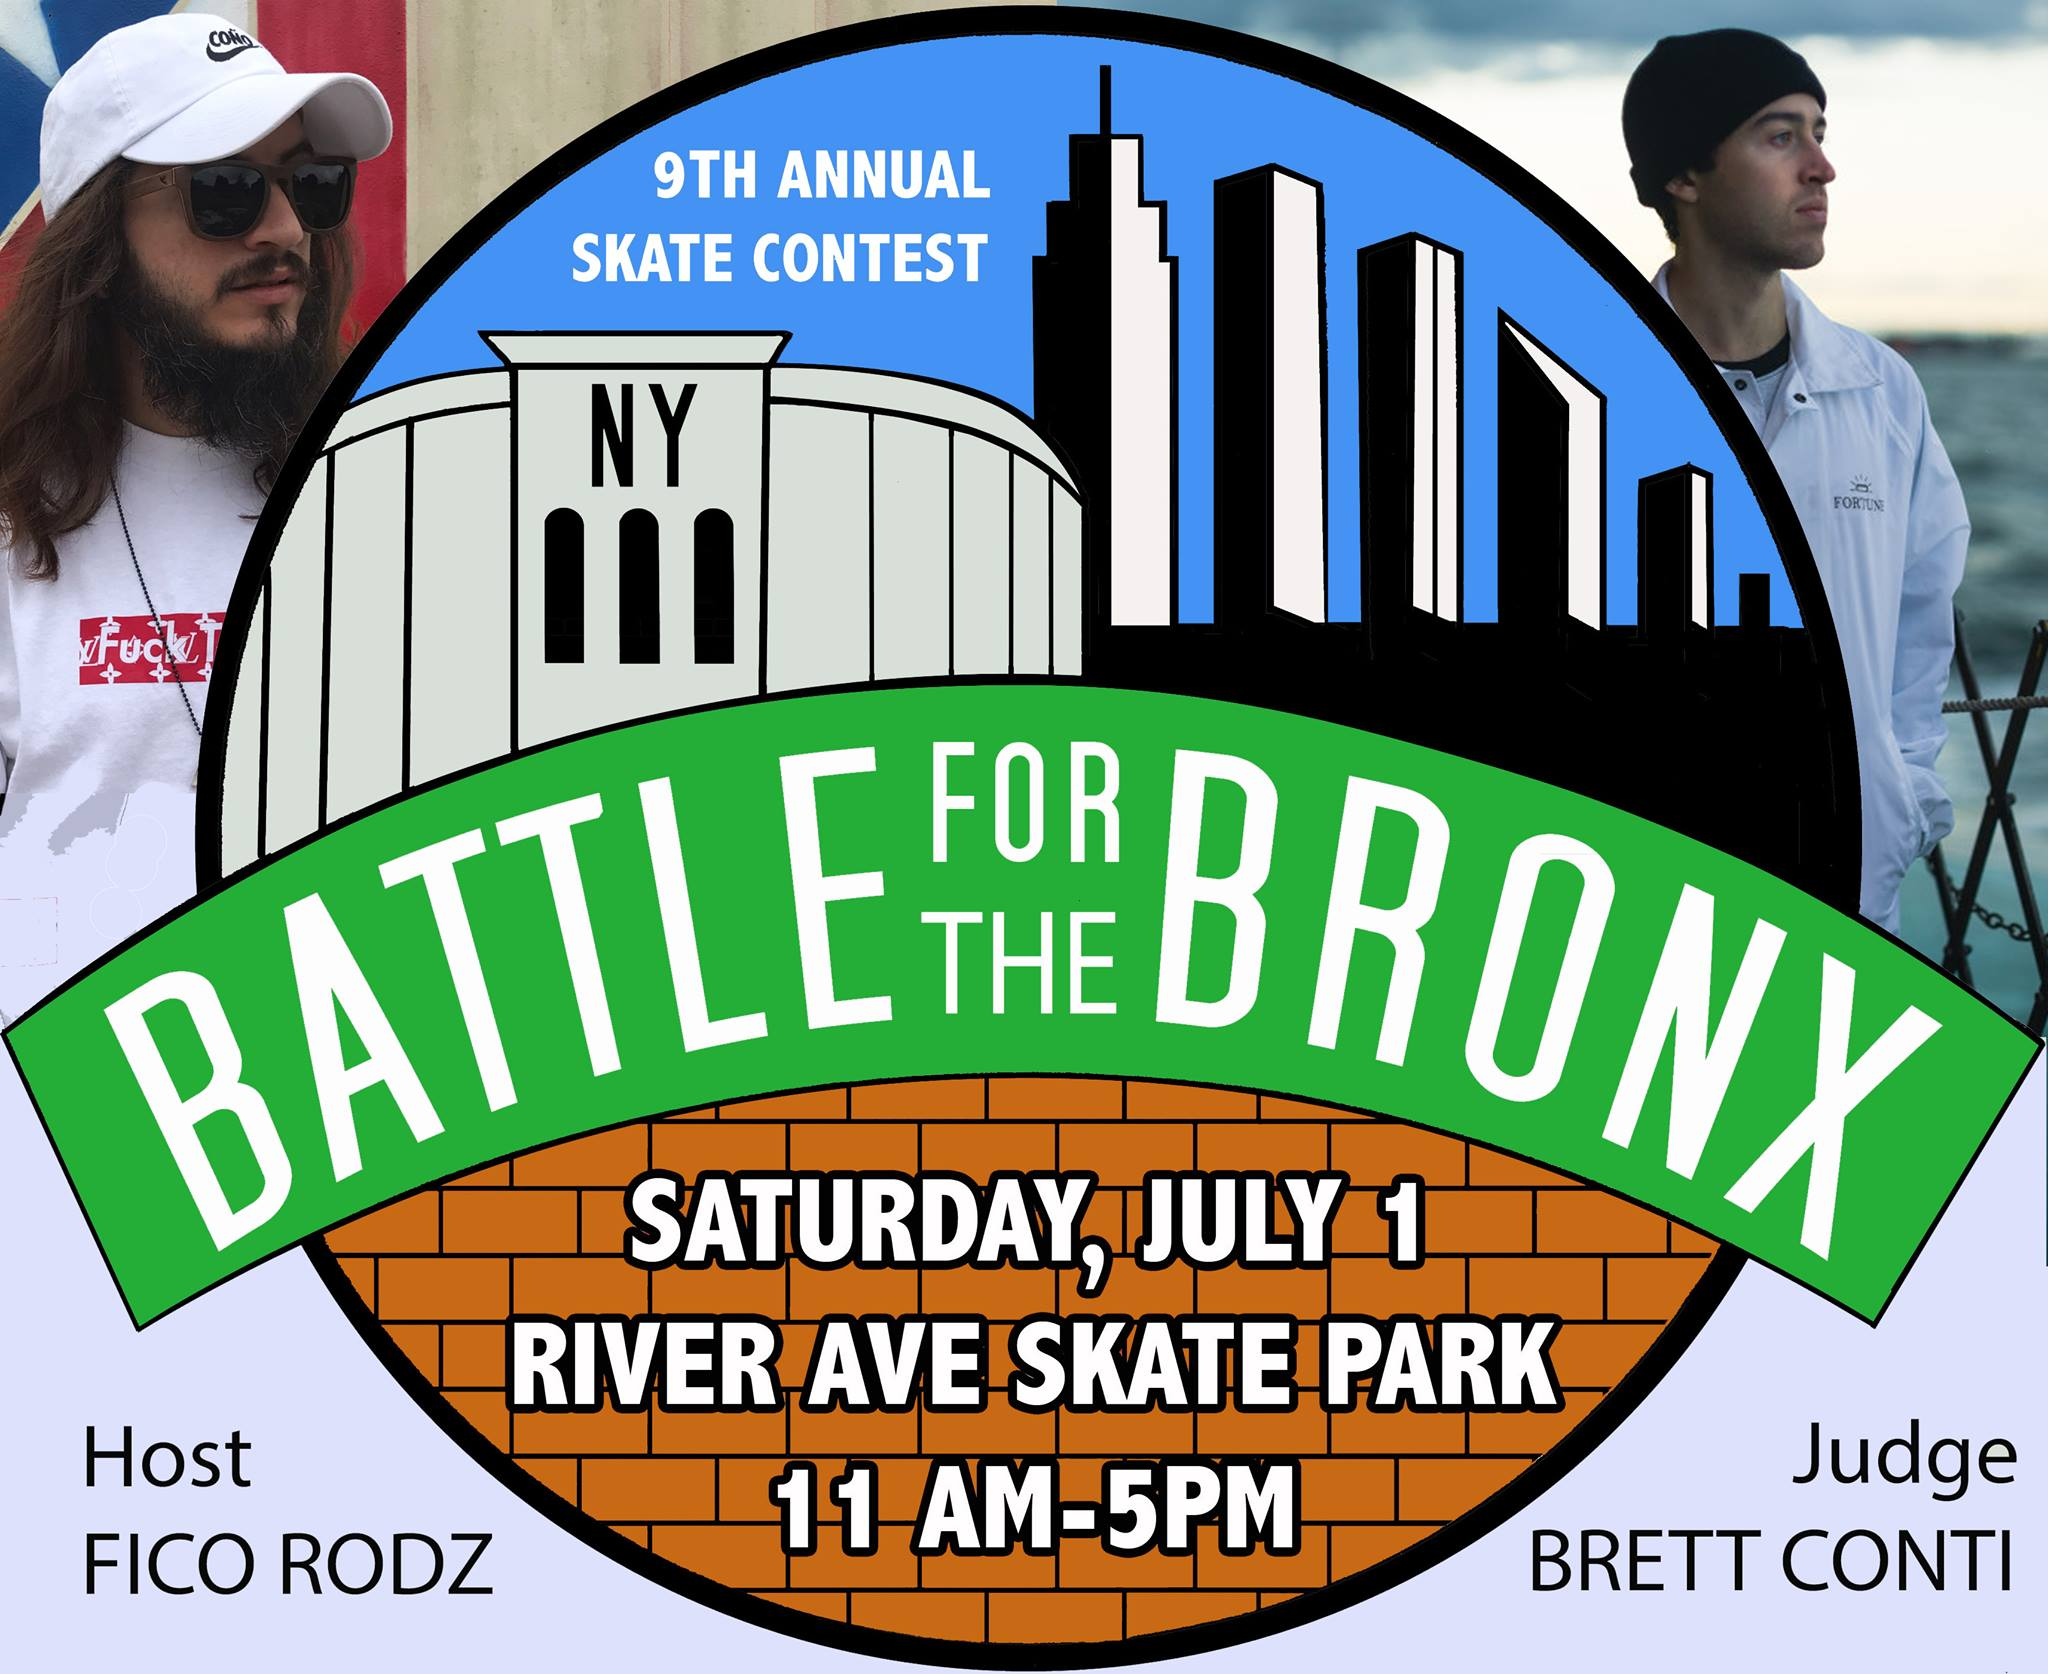 Tomorrow: Battle For The Bronx Contest (2017)